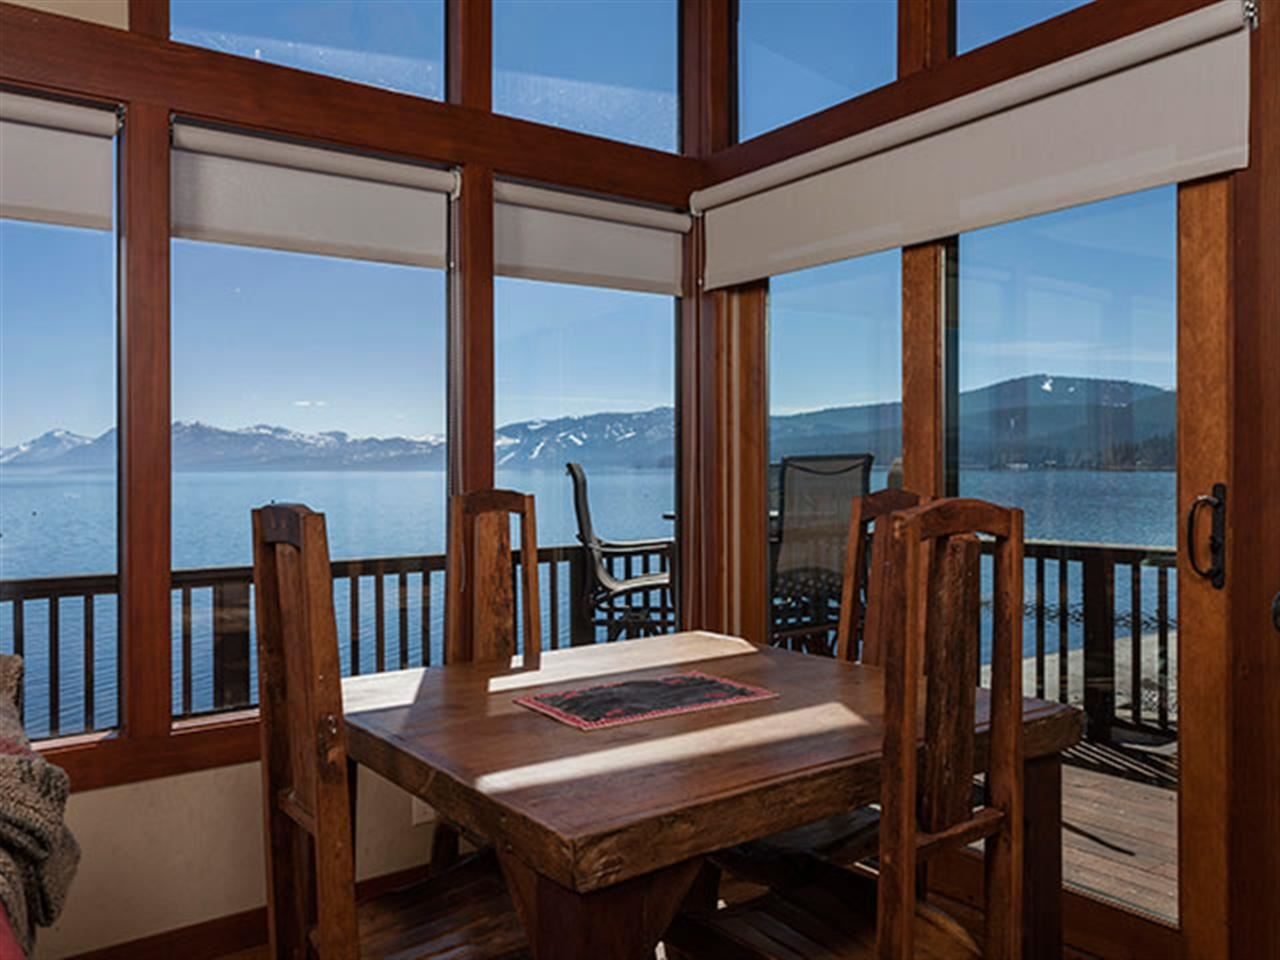 Additional photo for property listing at 2350 Star Harbor Court Tahoe City, California 96145 United States